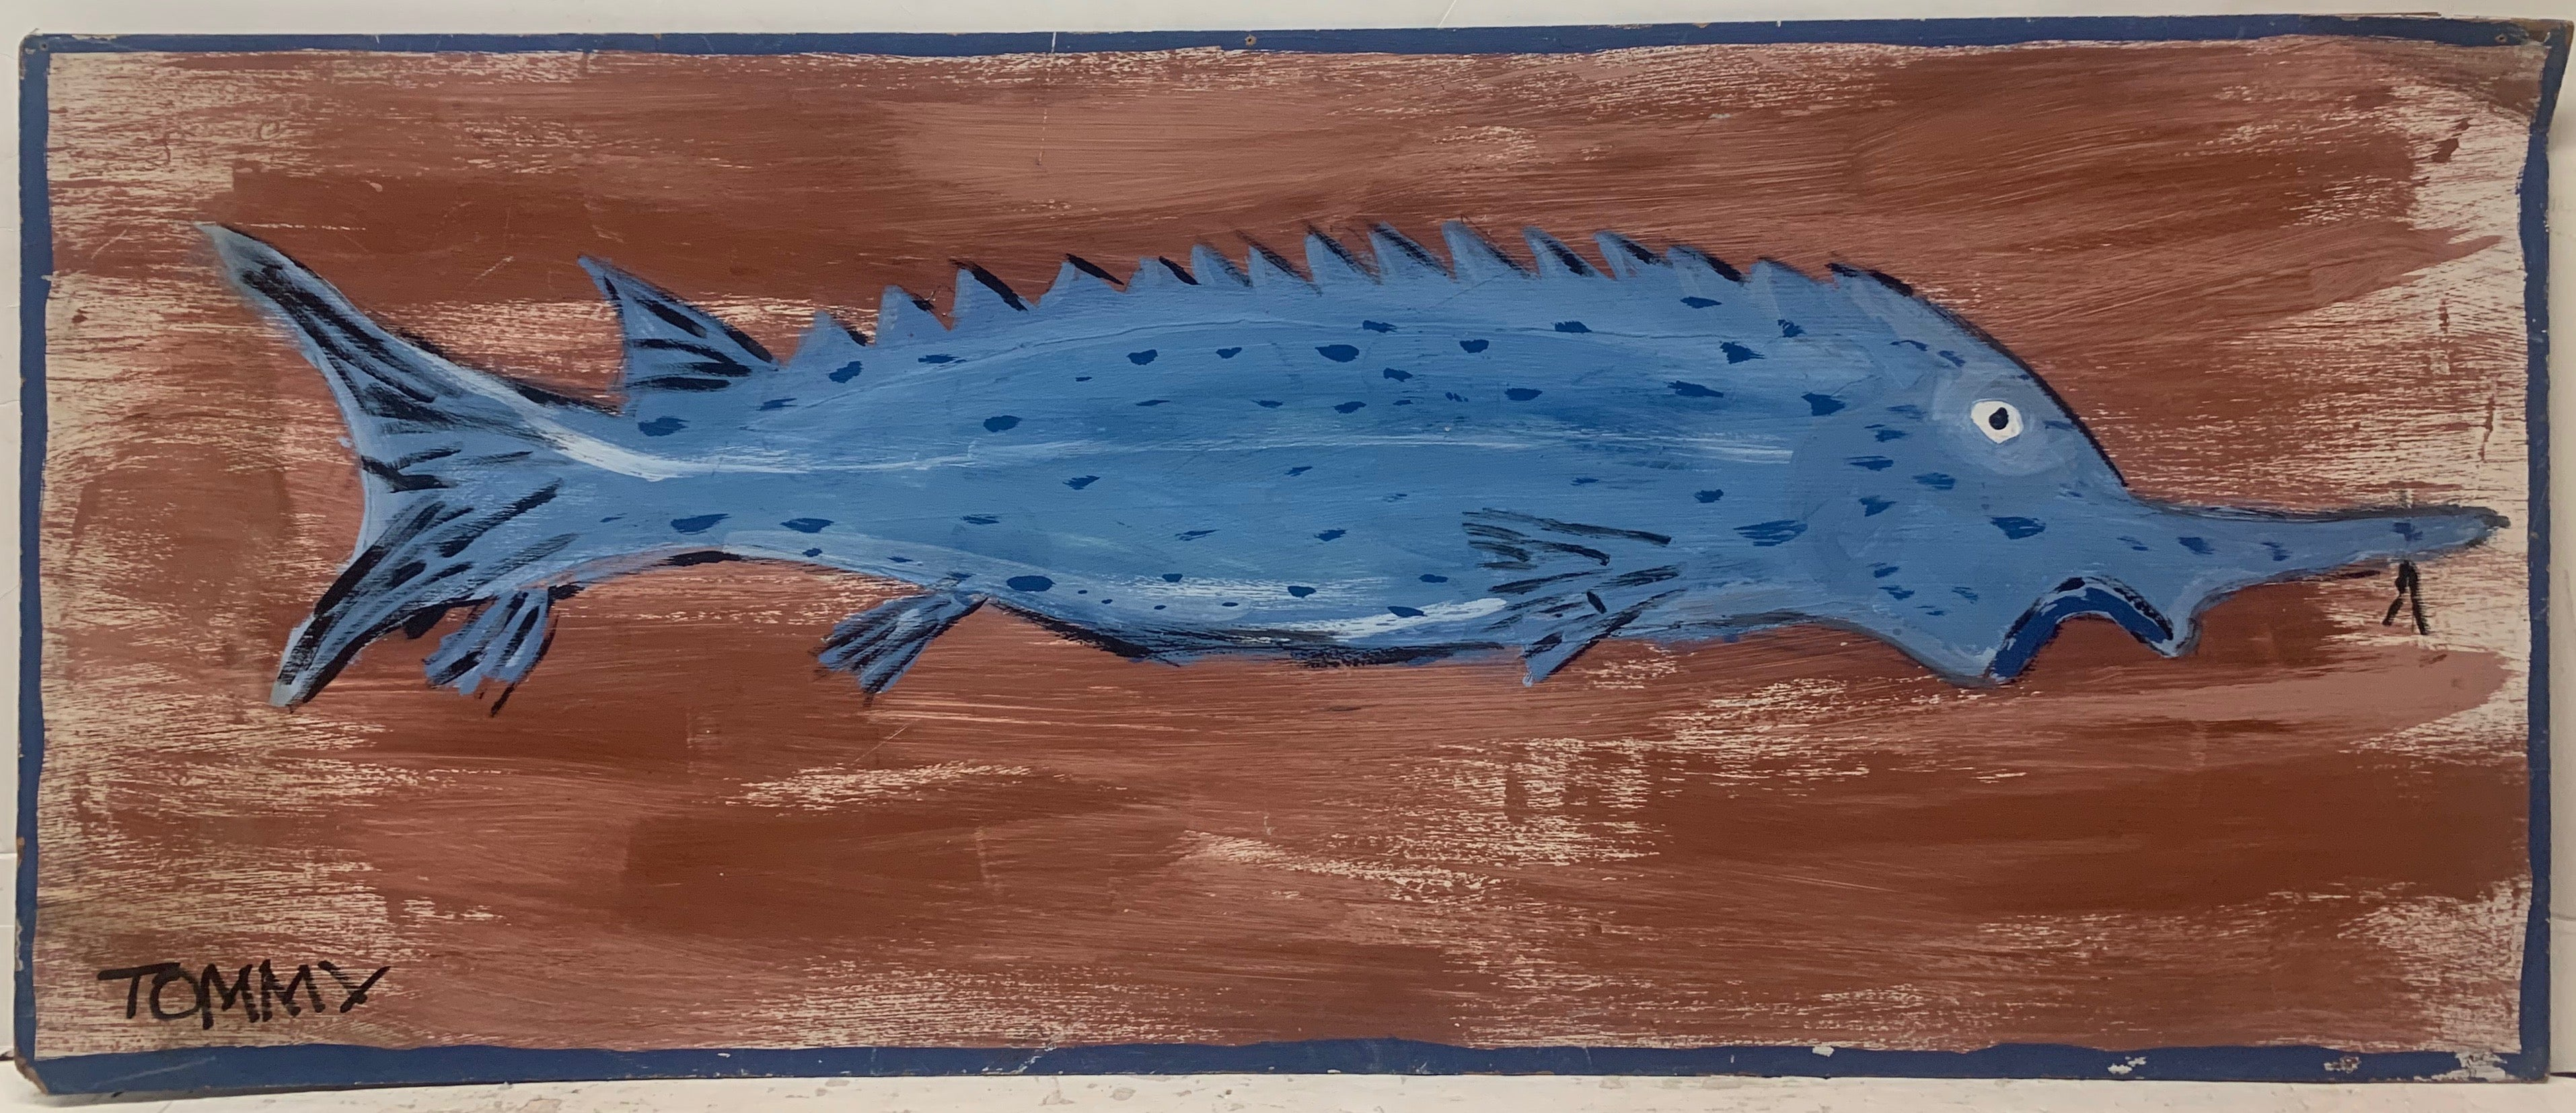 A Tommy Cheng painting of a blue fish with spikes on a brown background.